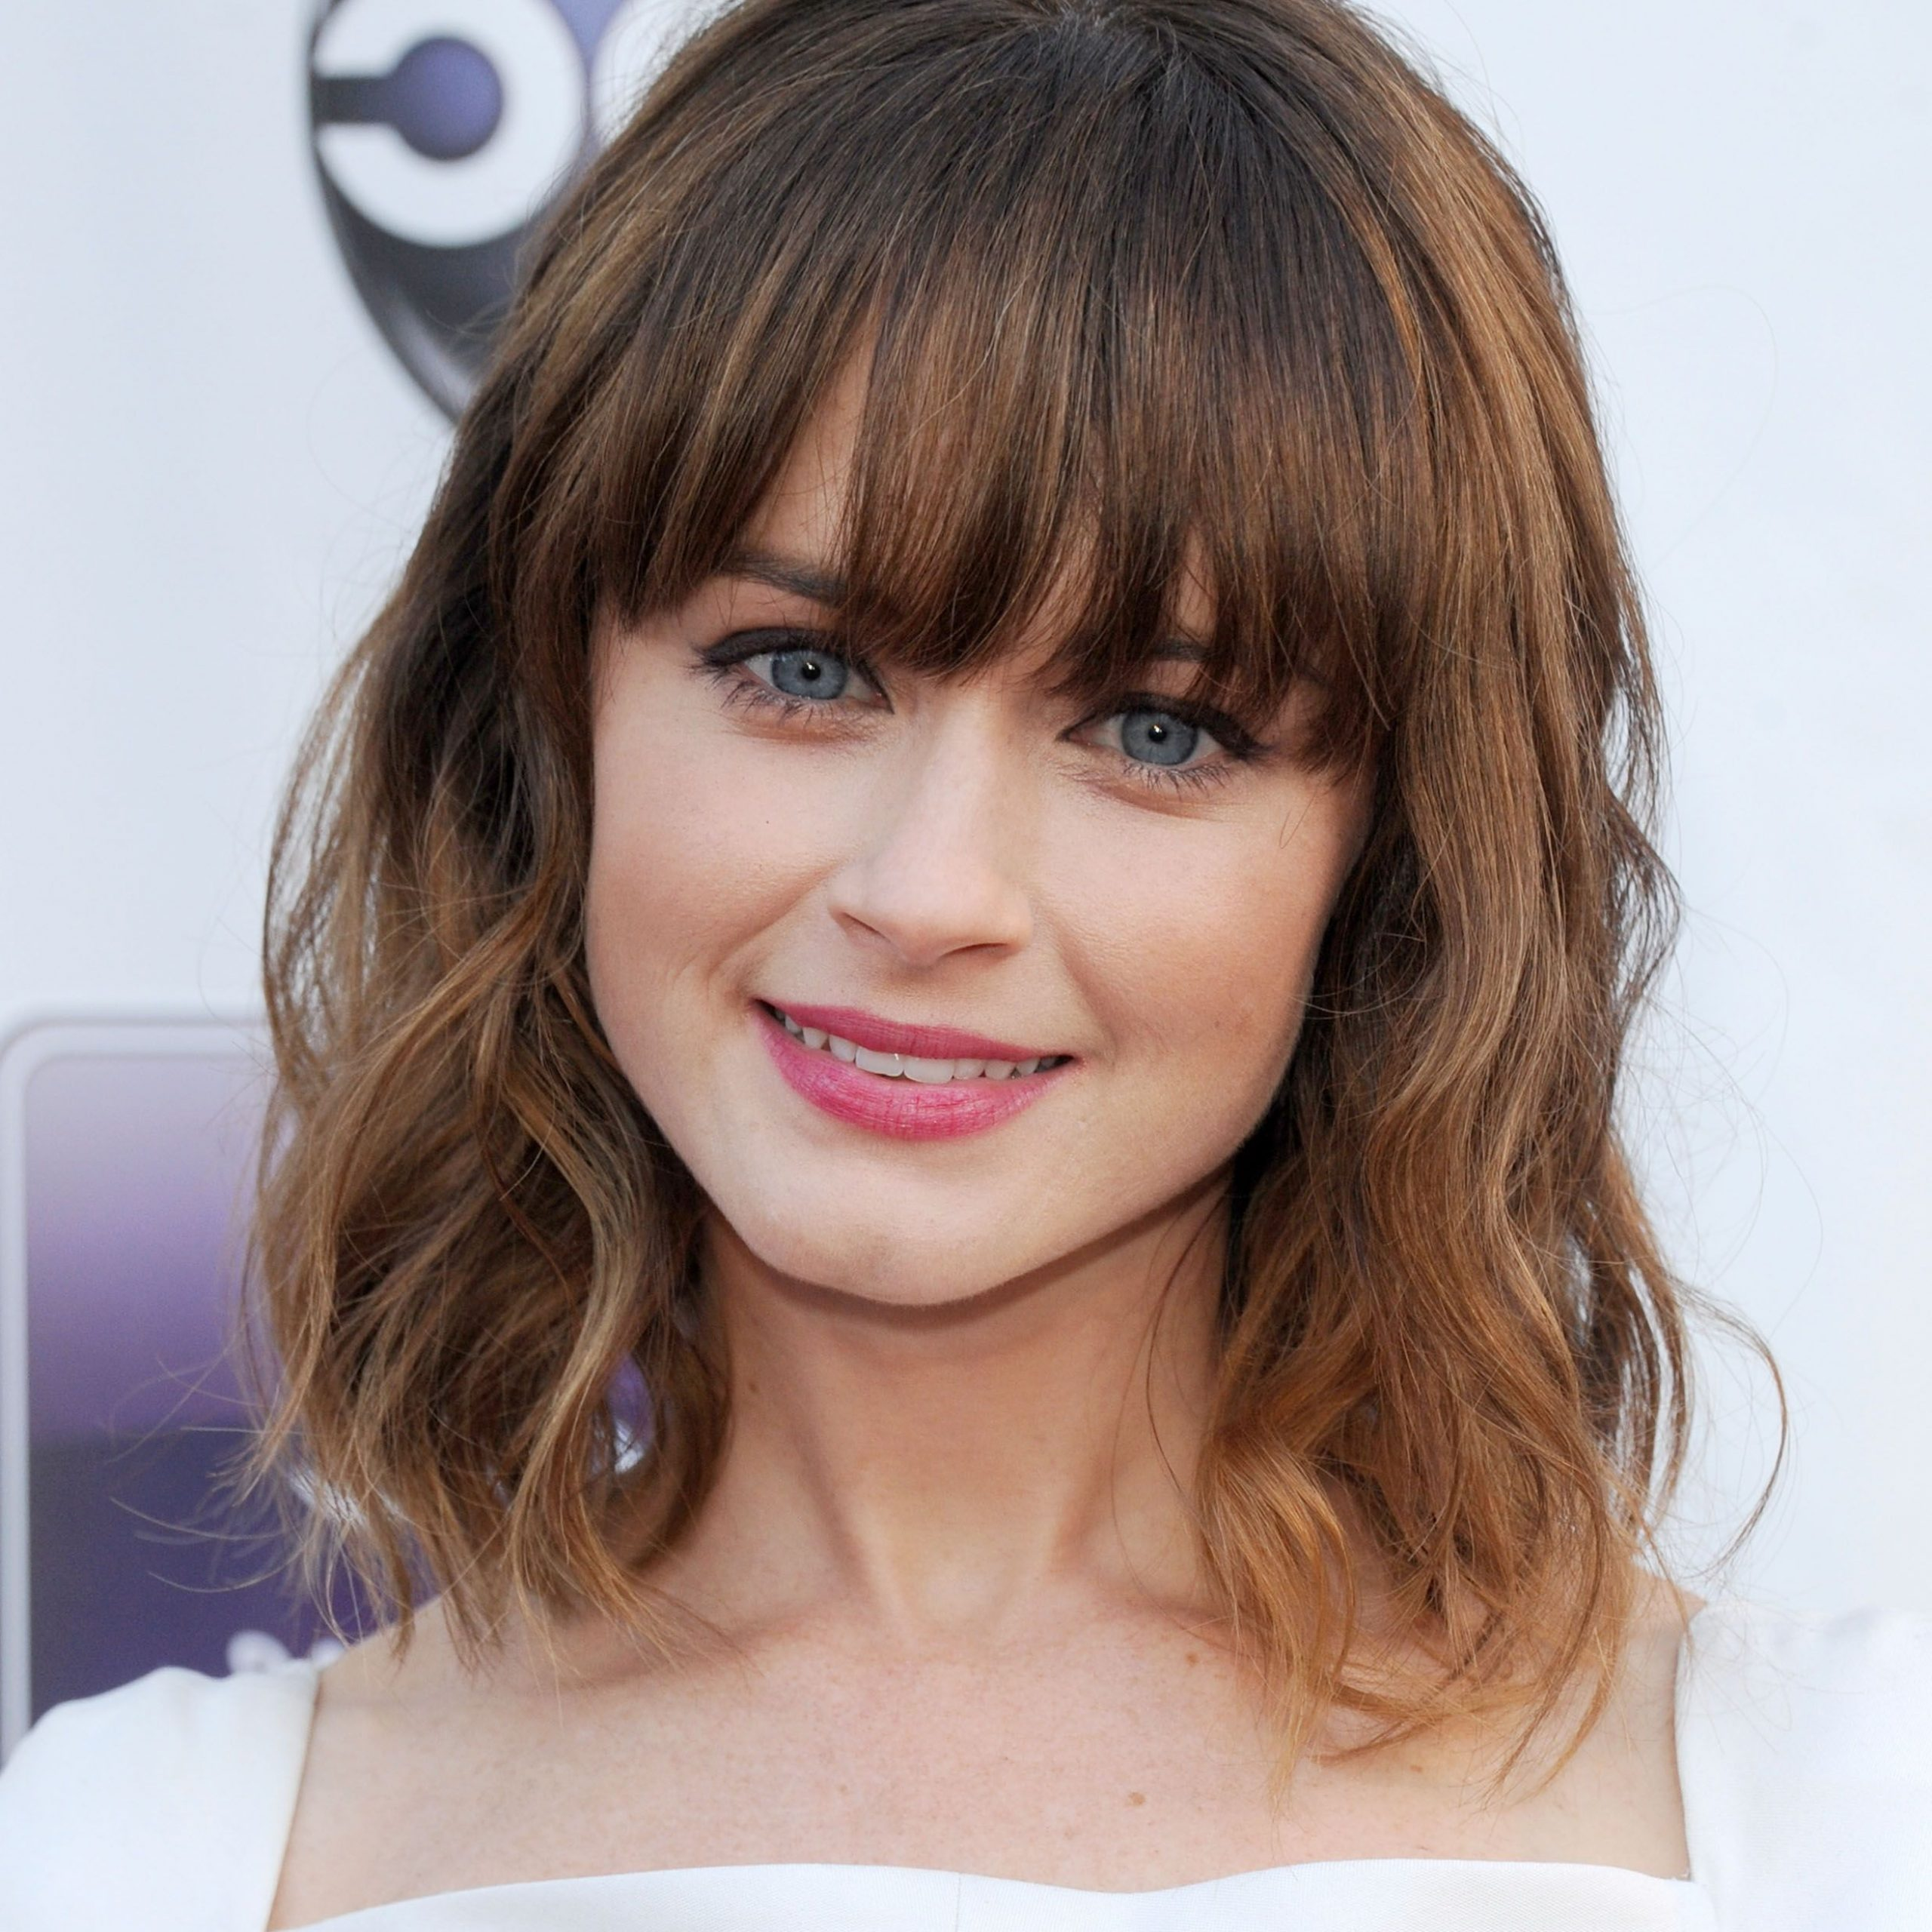 35 Best Hairstyles With Bangs – Photos Of Celebrity Haircuts Intended For Fashionable Shaggy Haircuts With Uneven Bangs (View 10 of 20)